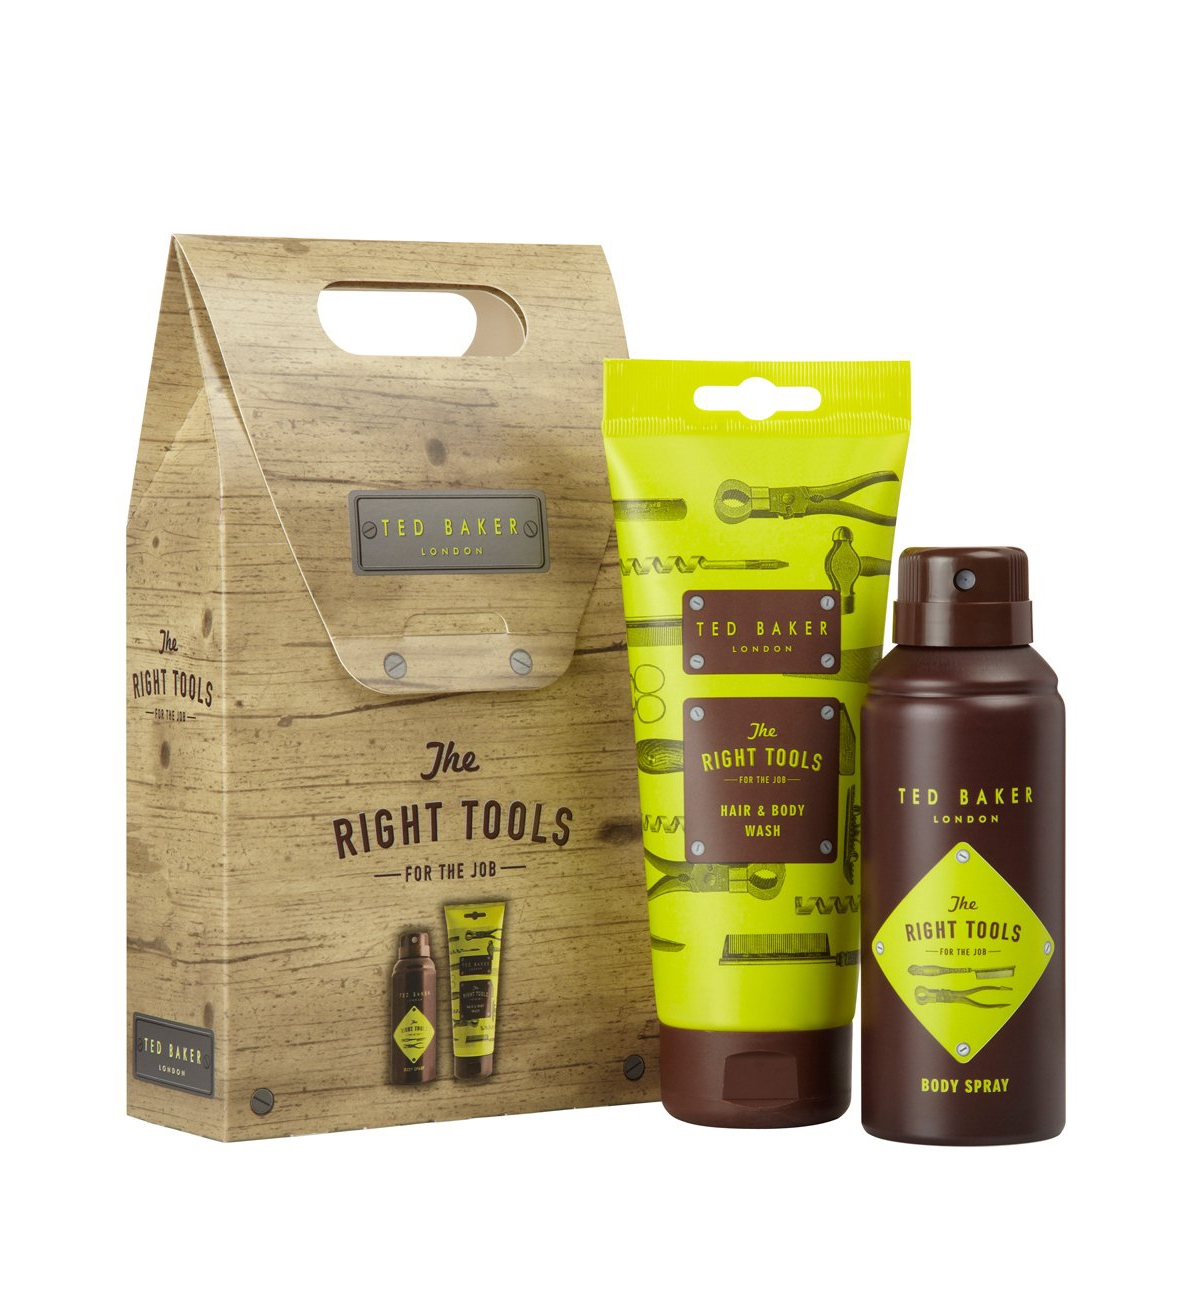 Ted Baker, 'The Right Tools' grooming kit